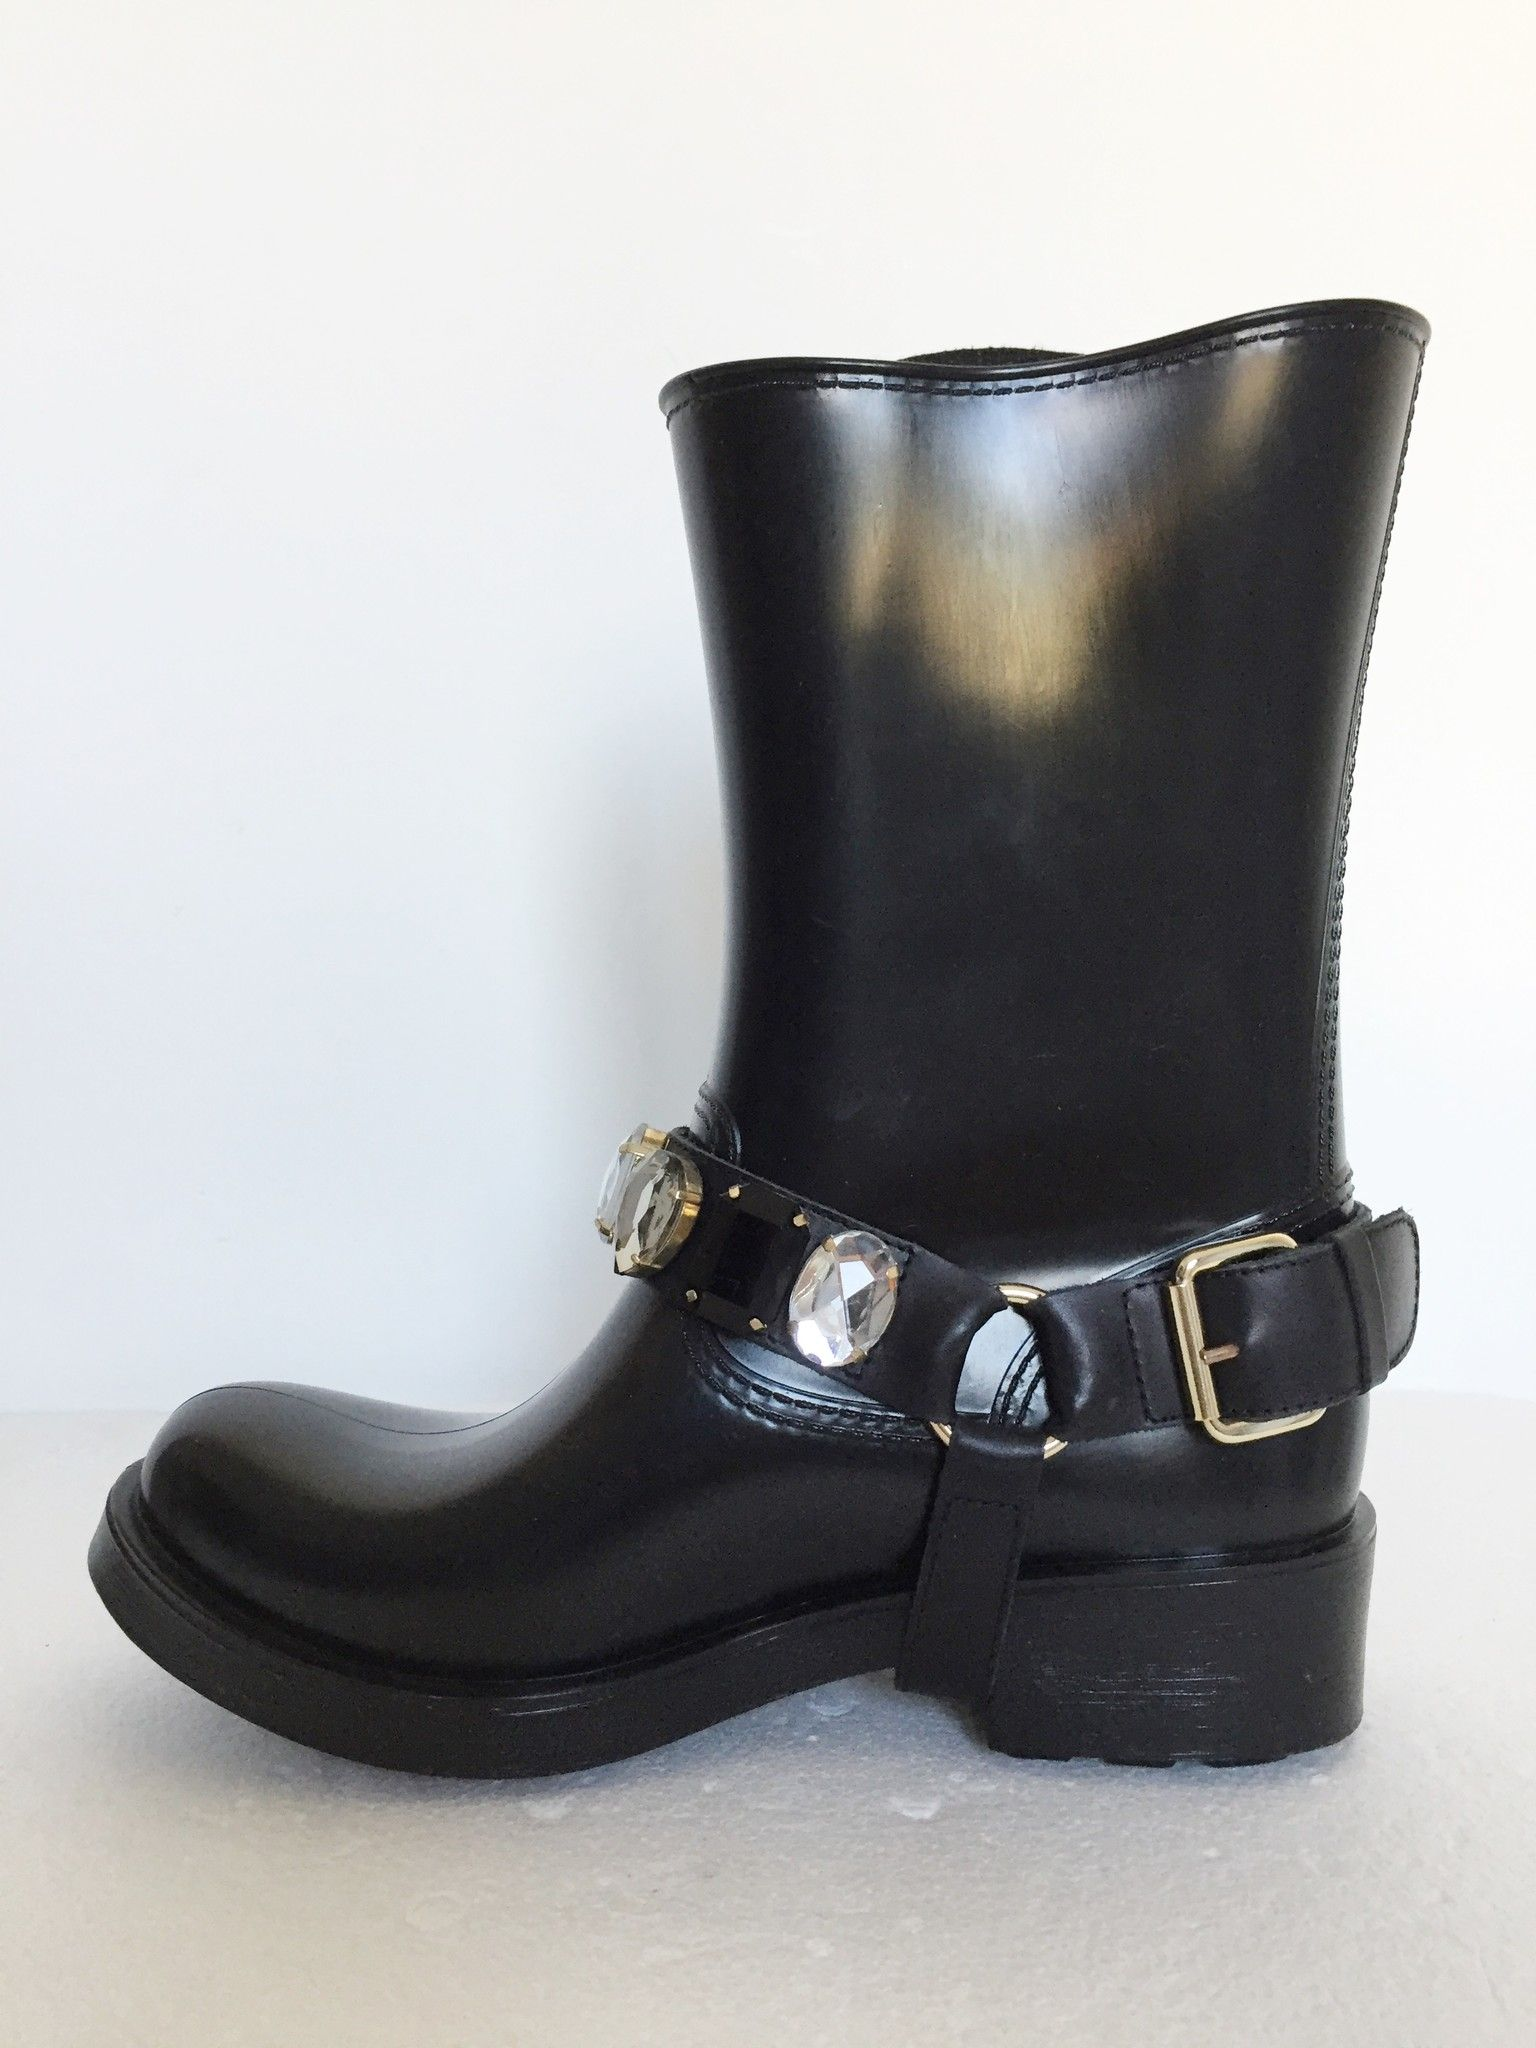 Atos Lombardini Rubber boots with stones Cod.0005